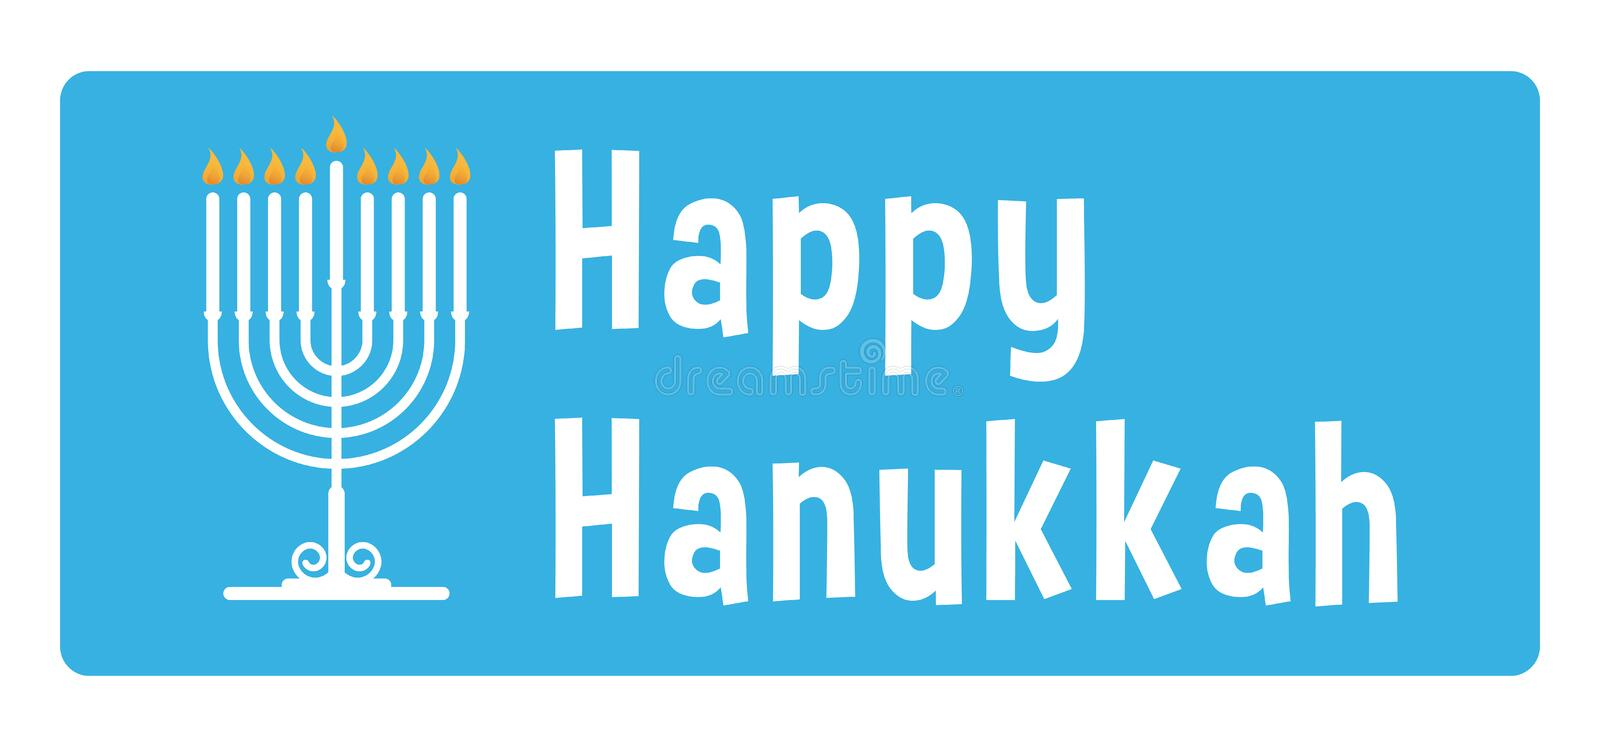 Hanukkah sticker stock illustration